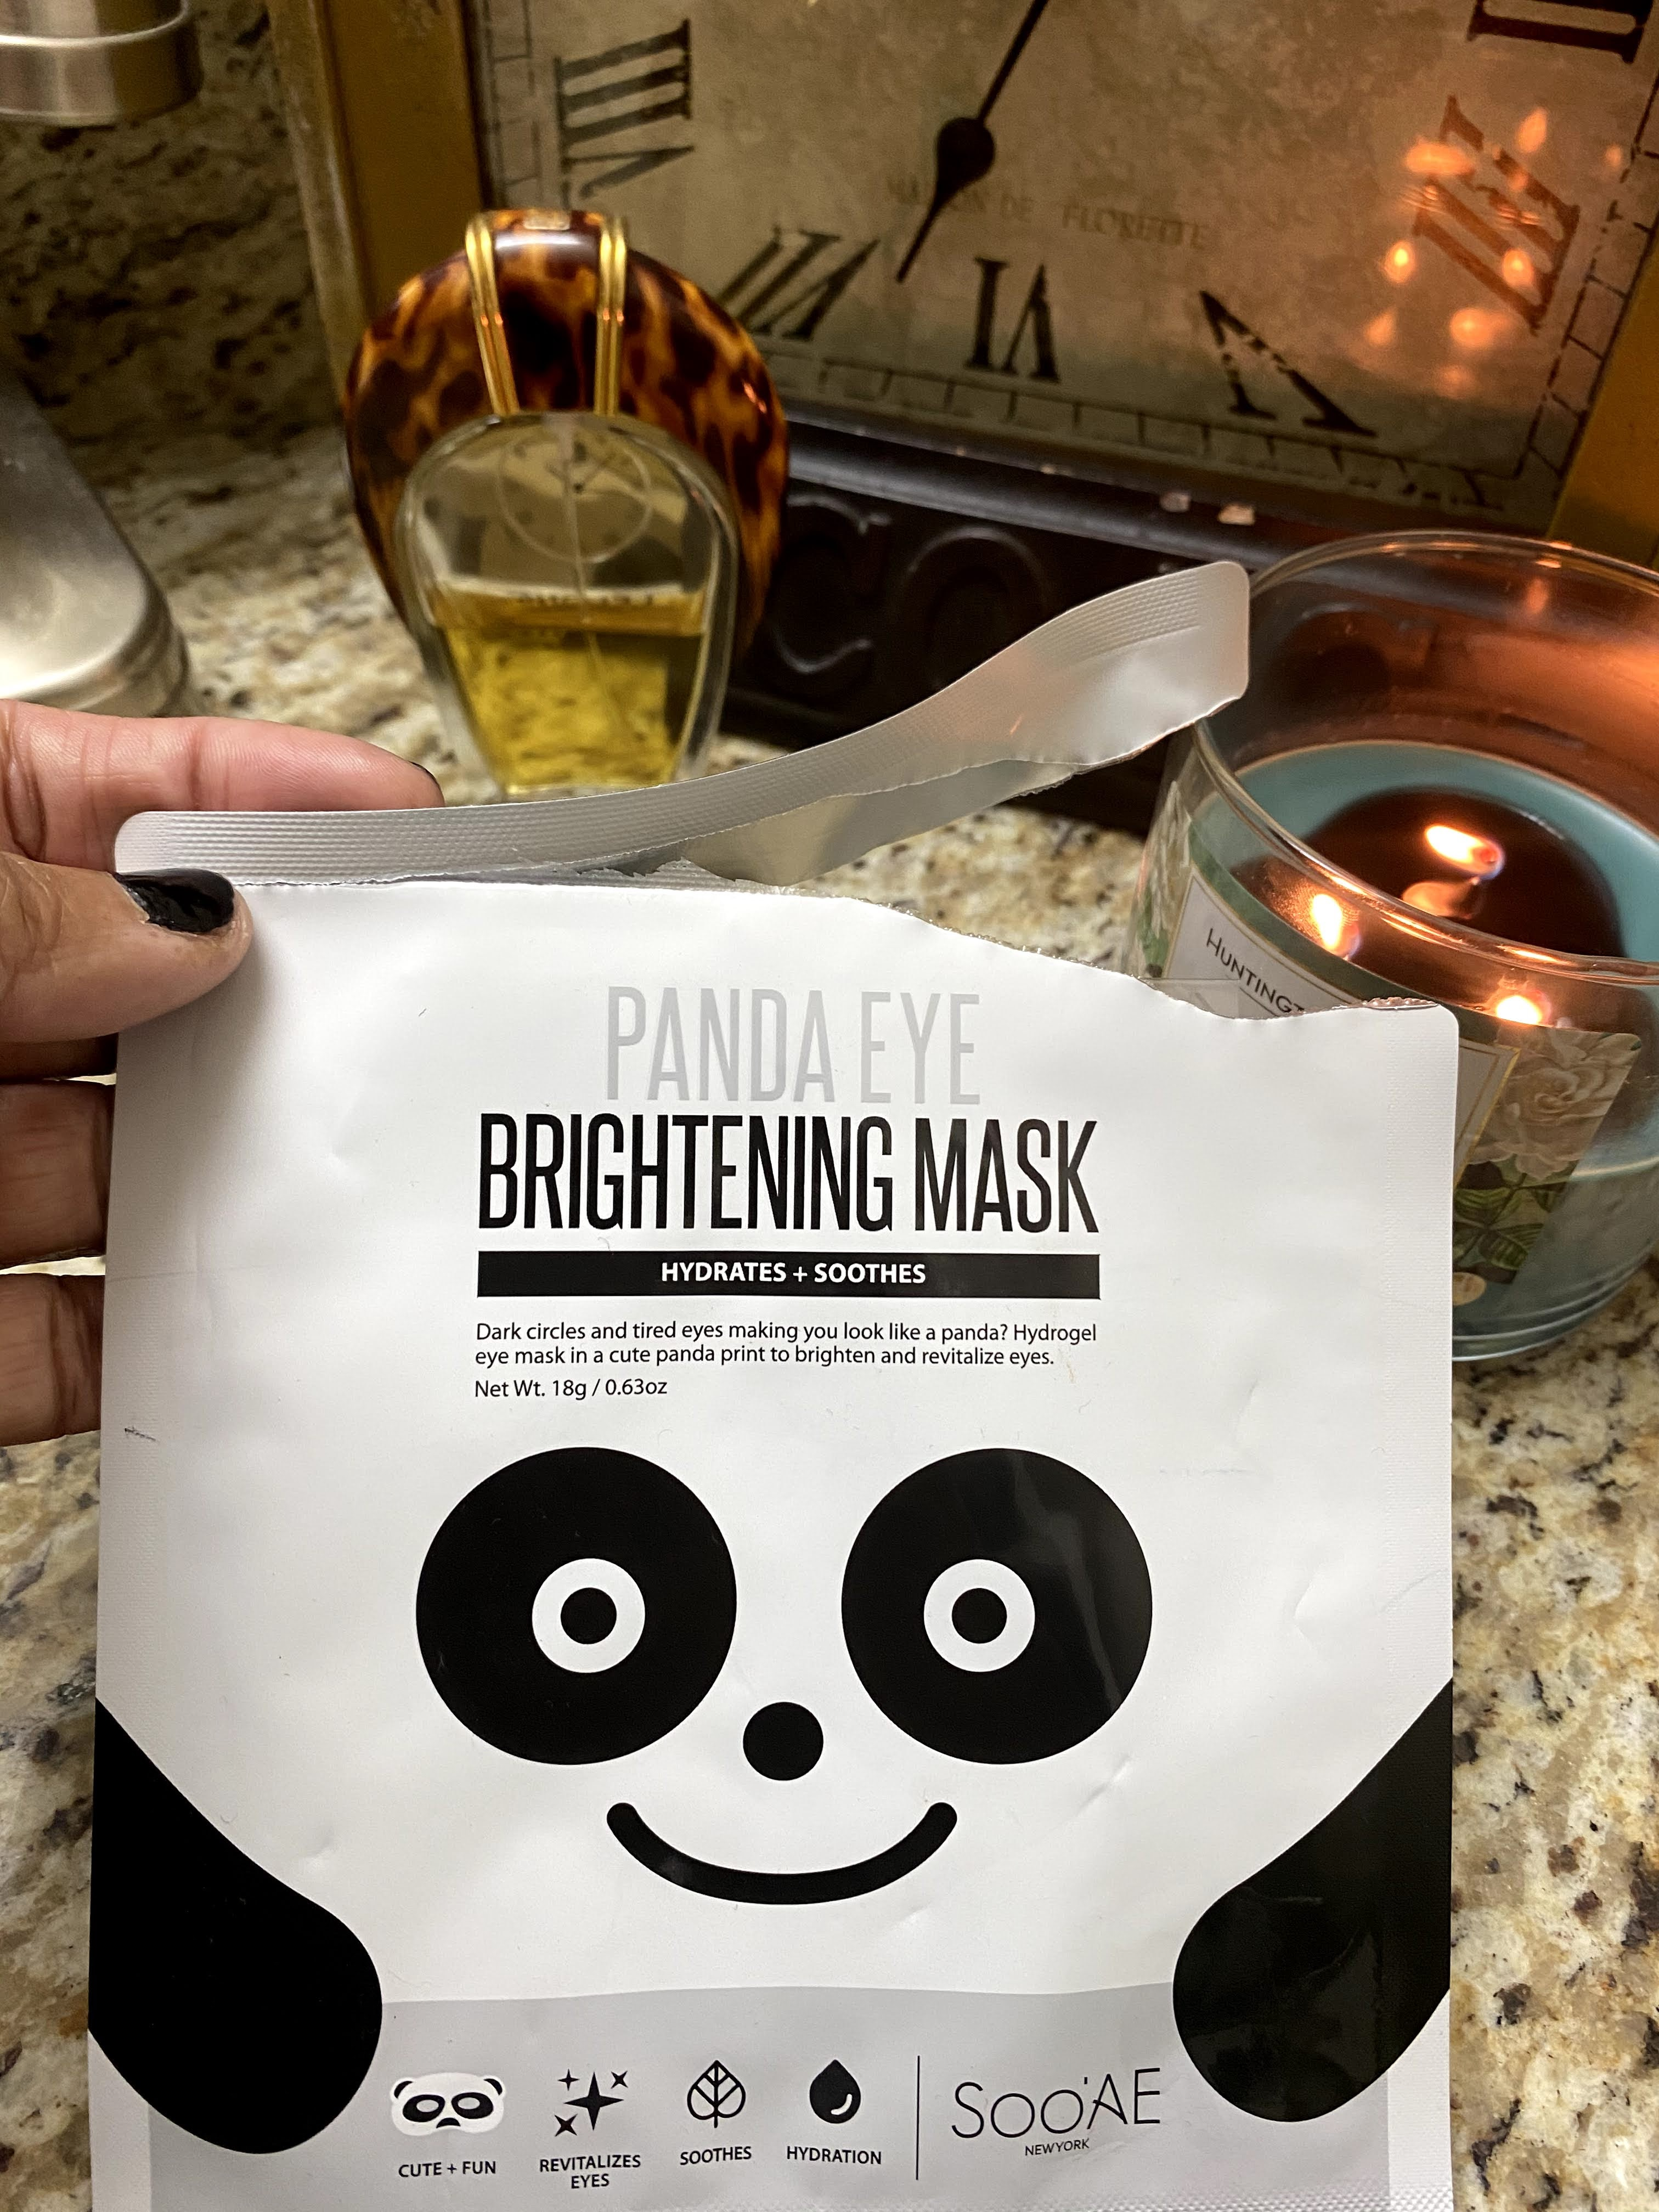 Woman showing off her new panda eye brightening face mask